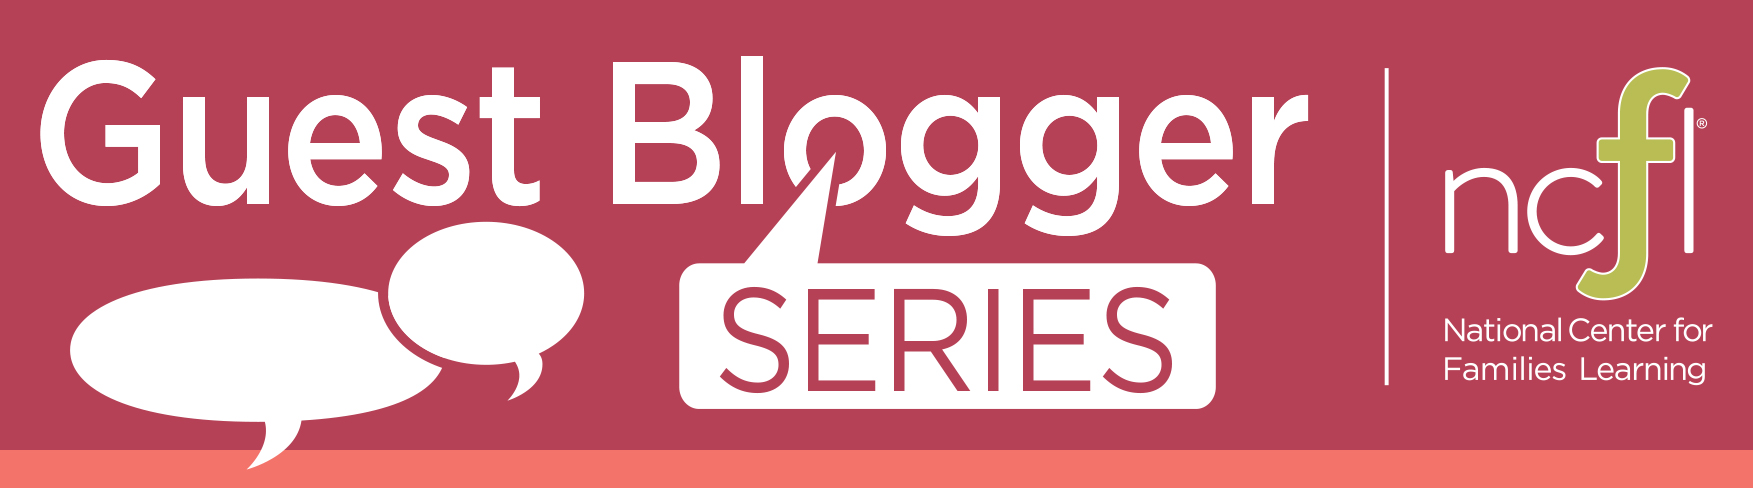 ncfl-guest-blogger-series_graphic